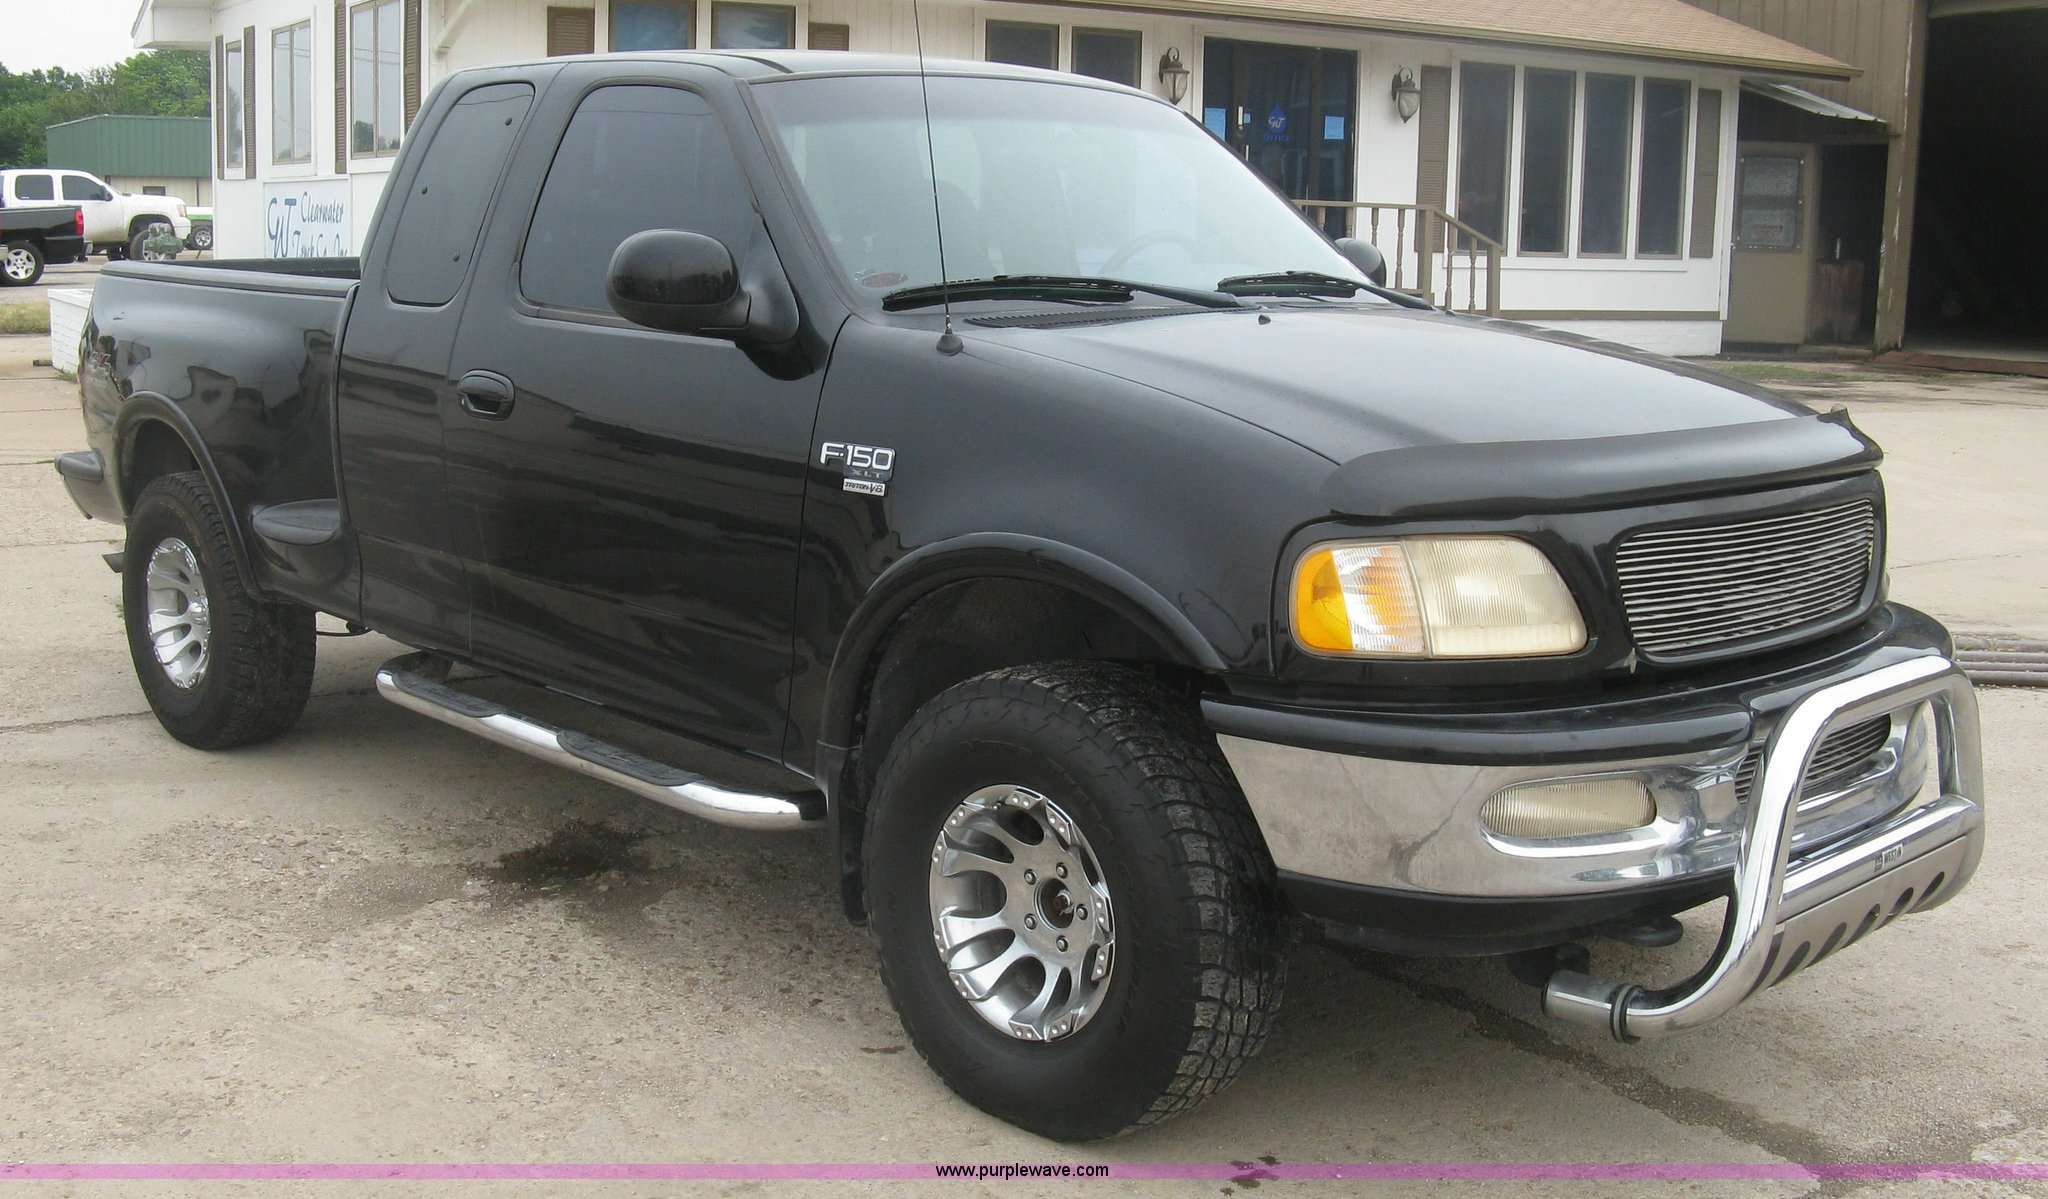 K8680 image for item k8680 1998 ford f150